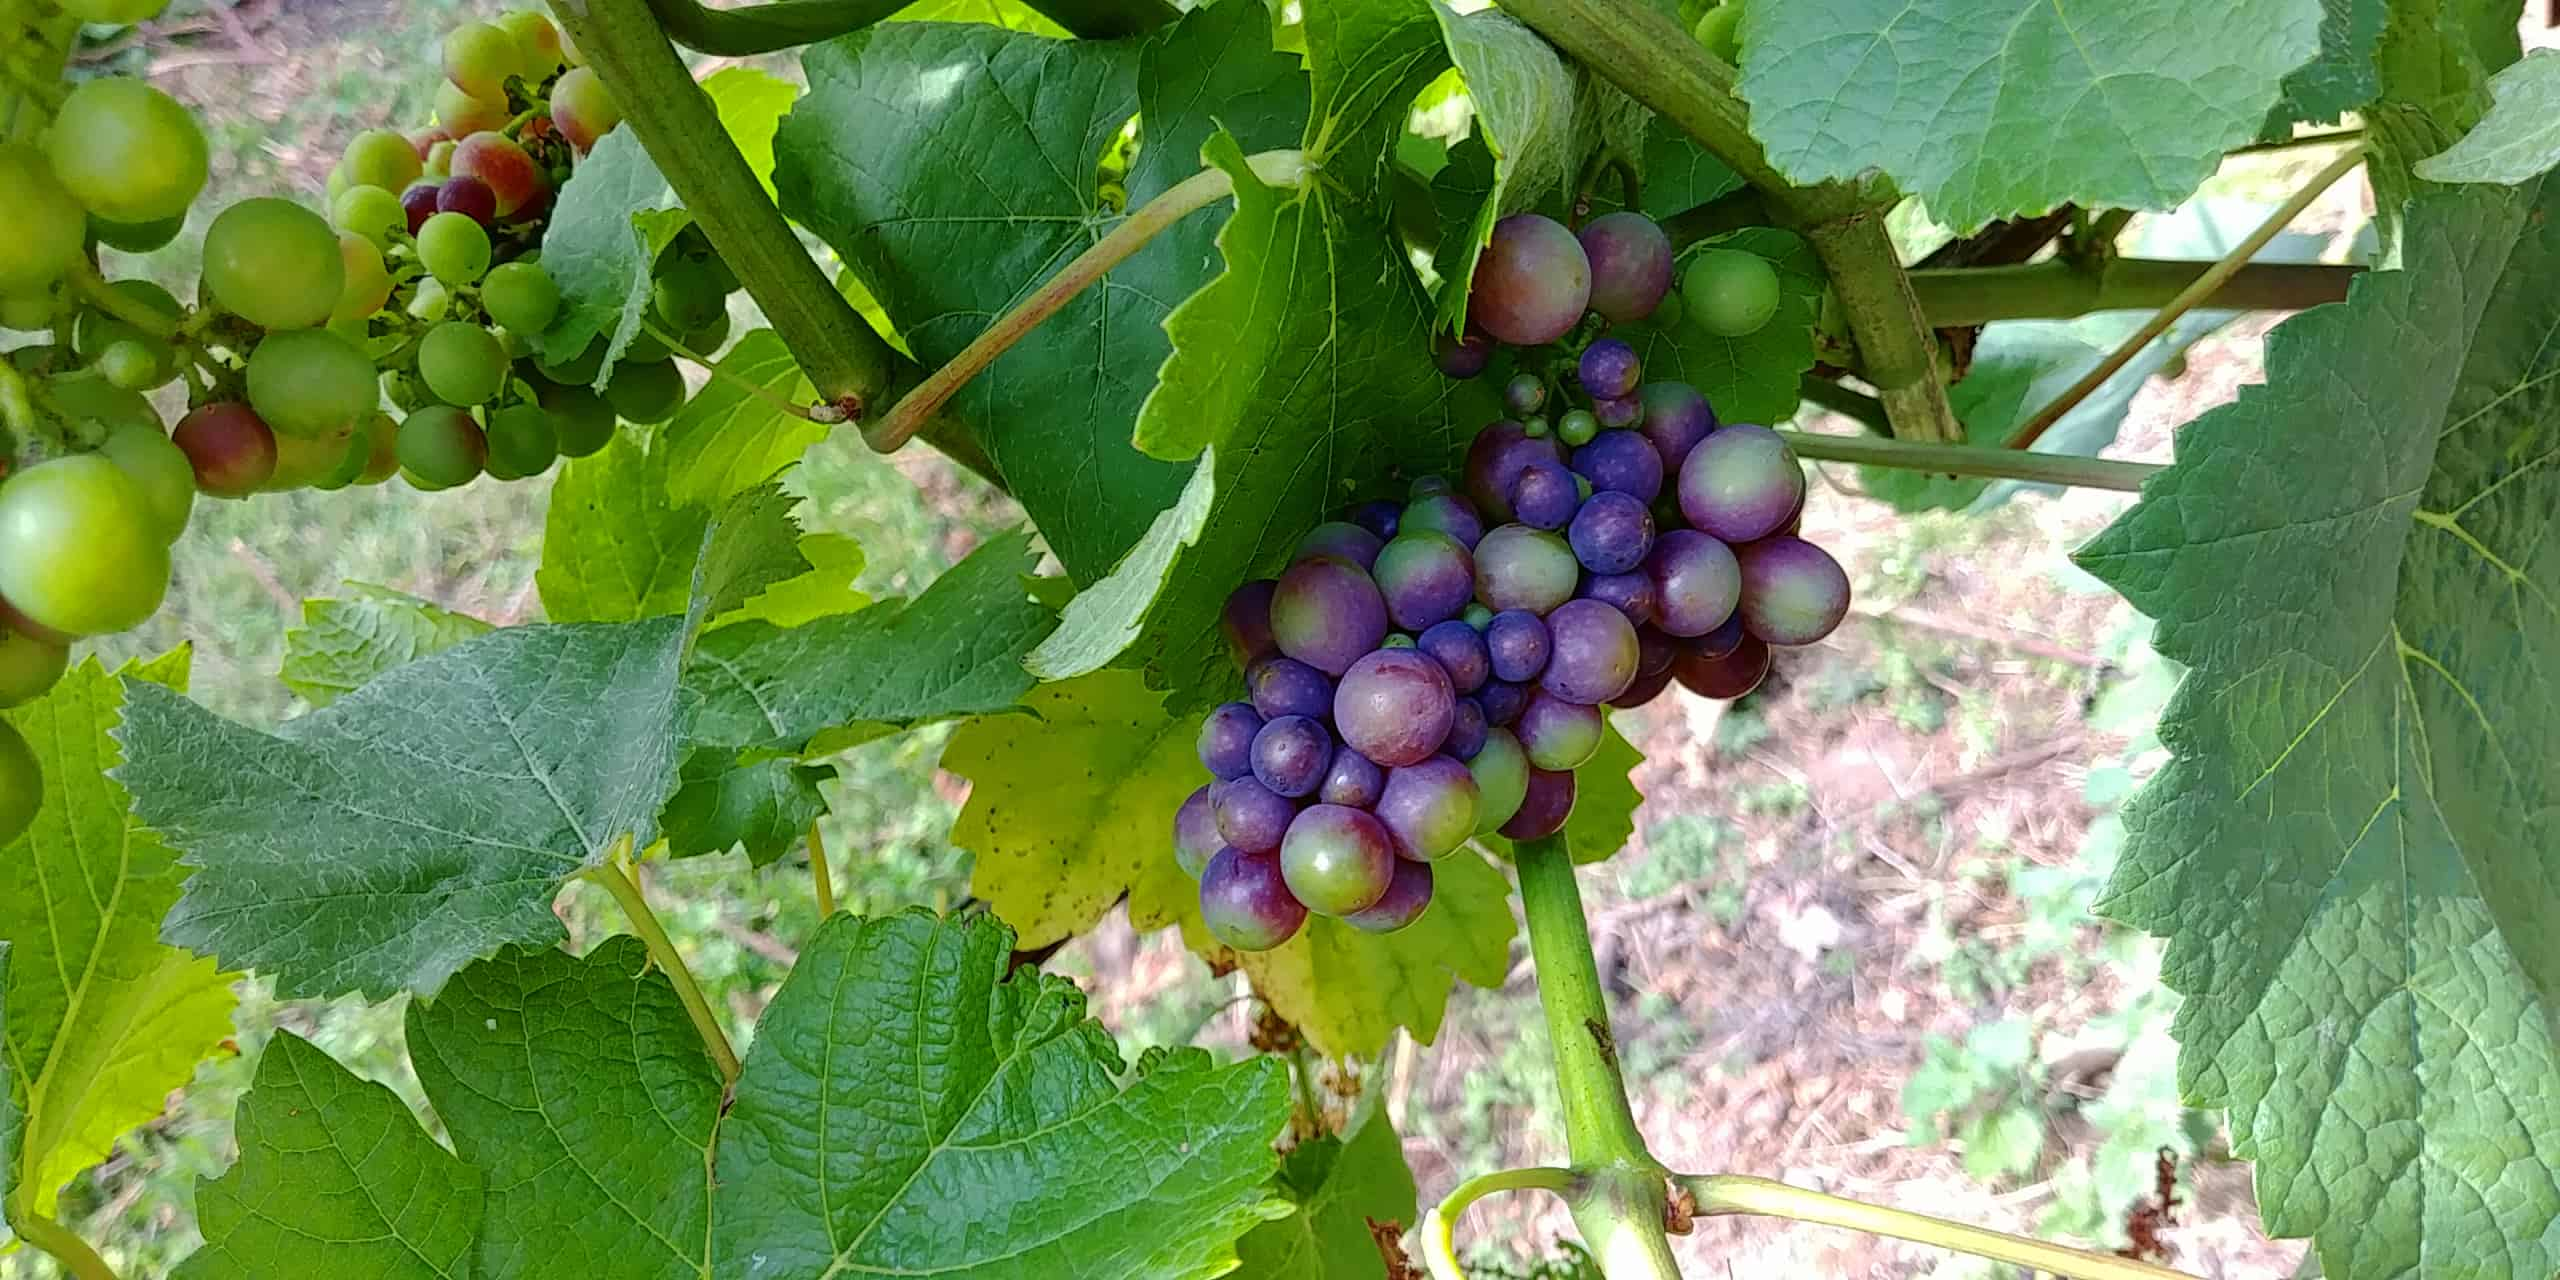 Rondo grapes in August at Wythall Vineyards, Ross-on-Wye England